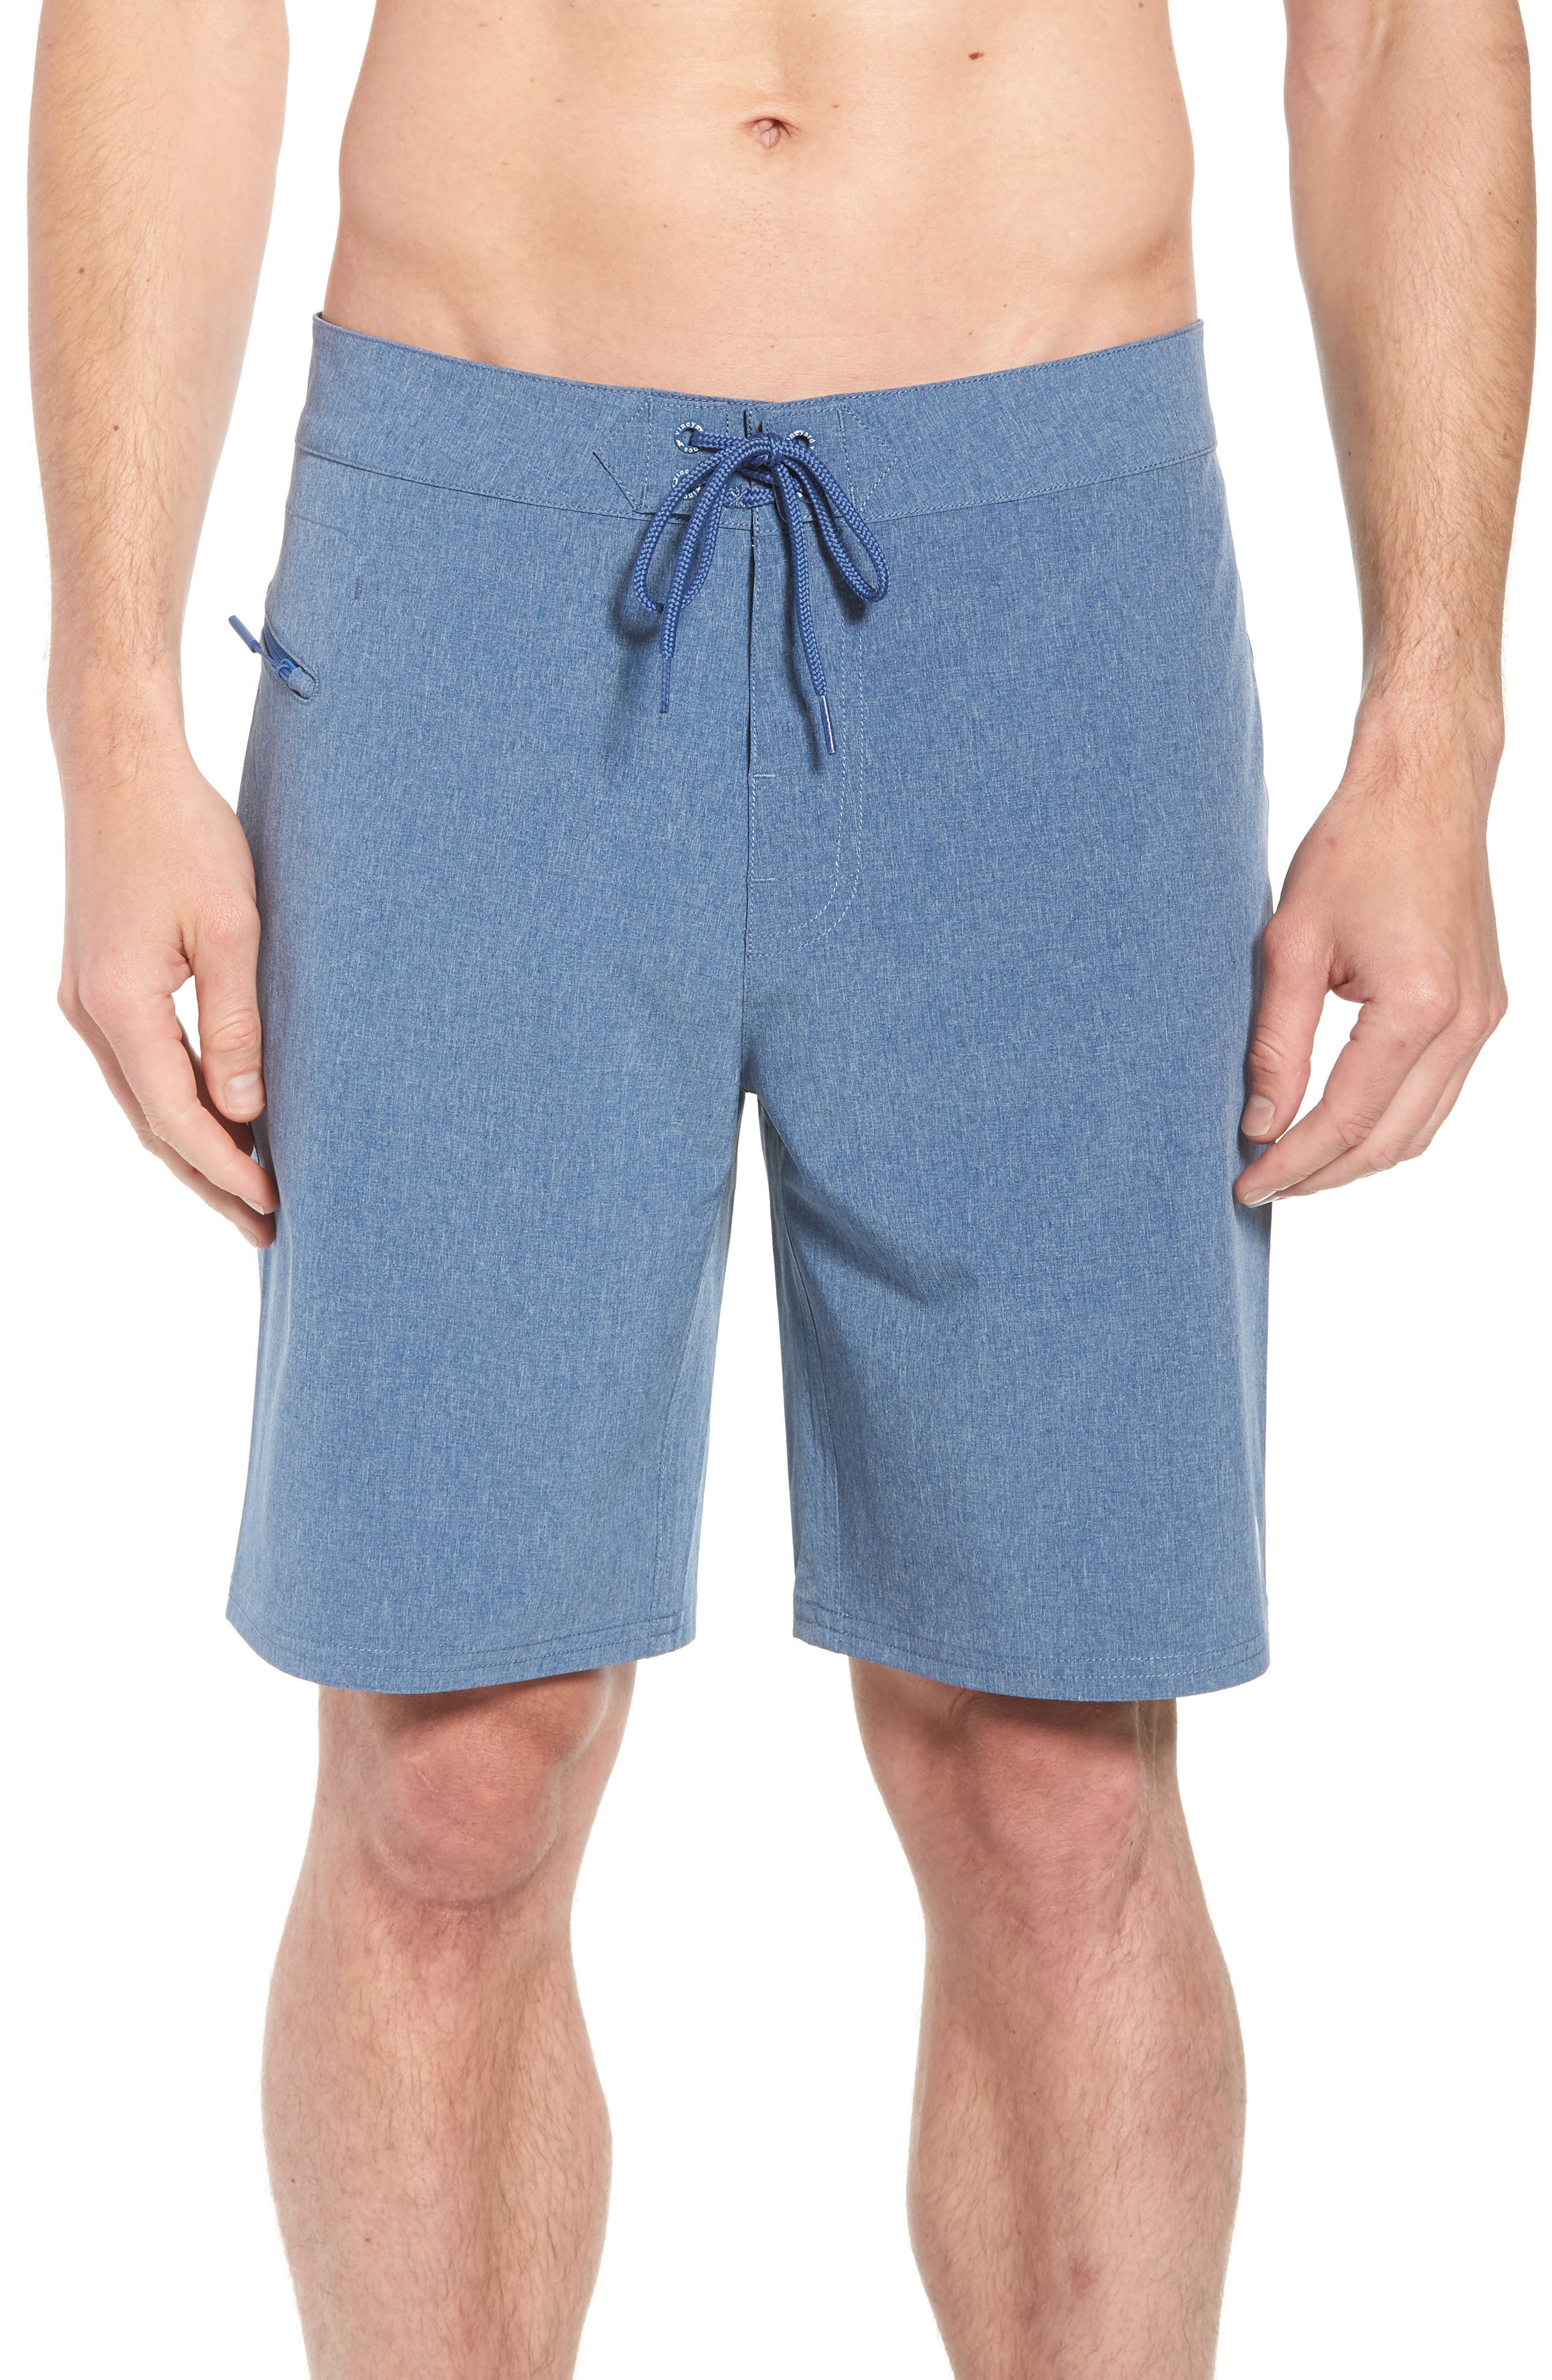 Heather Stretch Board Shorts,                         Main,                         color, 461